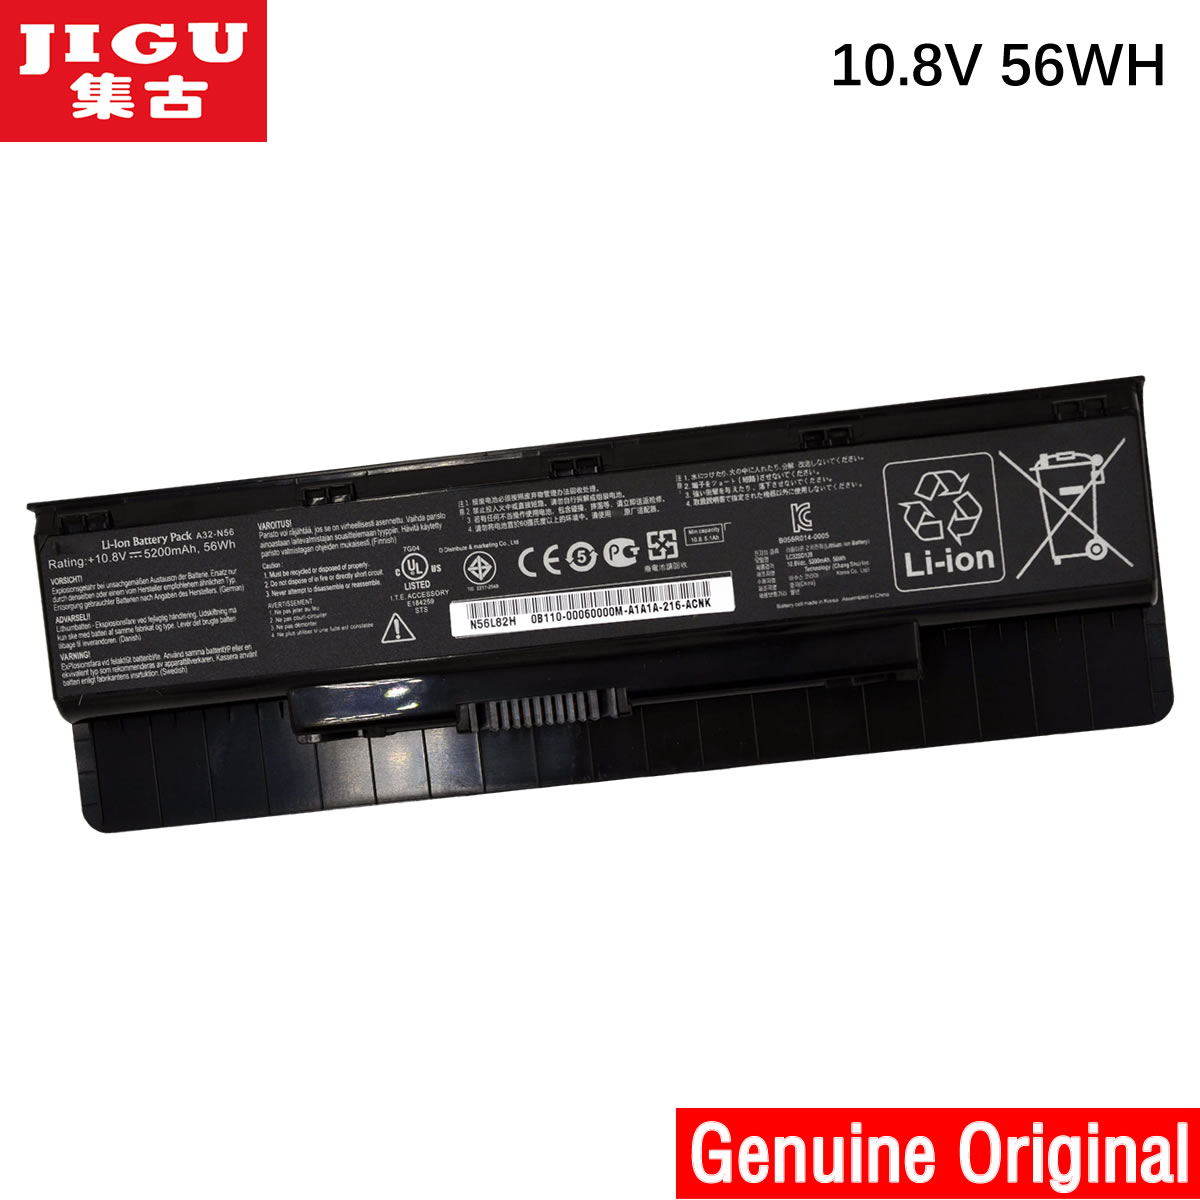 TUPower Nr 101 Chargeur 19 V//4,74 A pour Acer Aspire 5742G 5749 5749Z 5750G 5720Z 5720ZG 5730 5730G 5730ZG 5735 5735z 5738 5738Z 5738G 5739 5739G 5740DG 5742G 5742Z 5745 5910 5910G 5920 5920G 5925G 5930 5930G 5930Z 5935 5935G 5942G 5943G 6920 6920g 6930 7